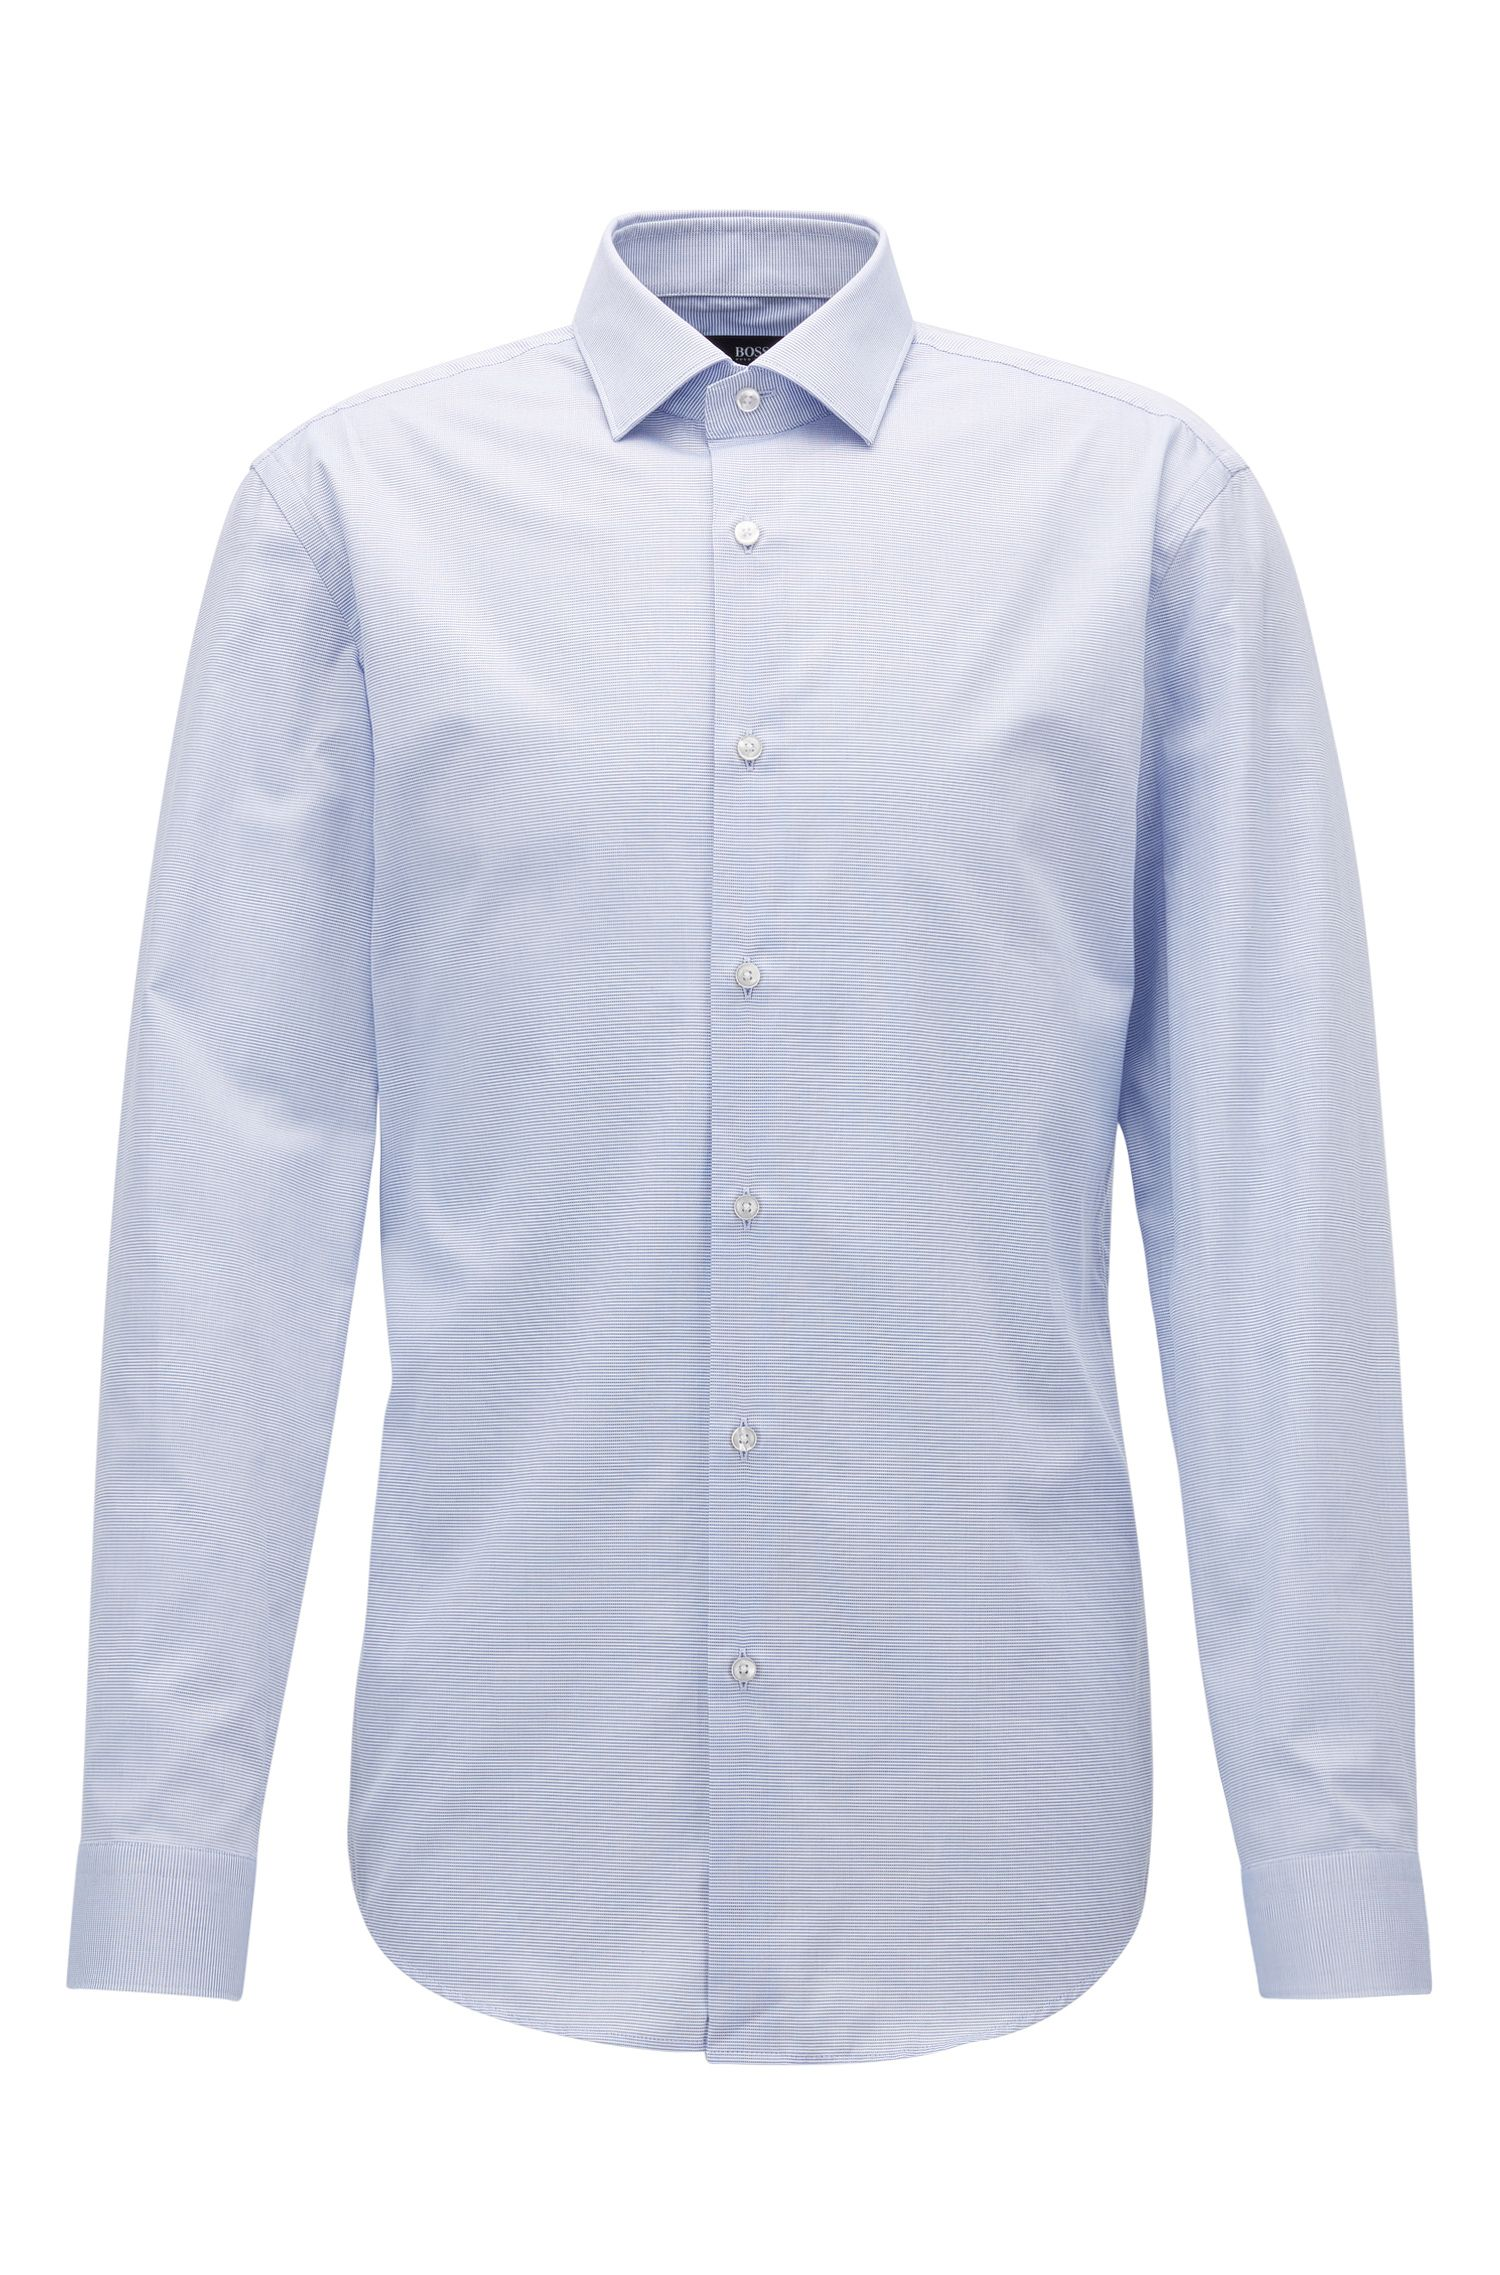 Micro-pattern cotton shirt in a slim fit